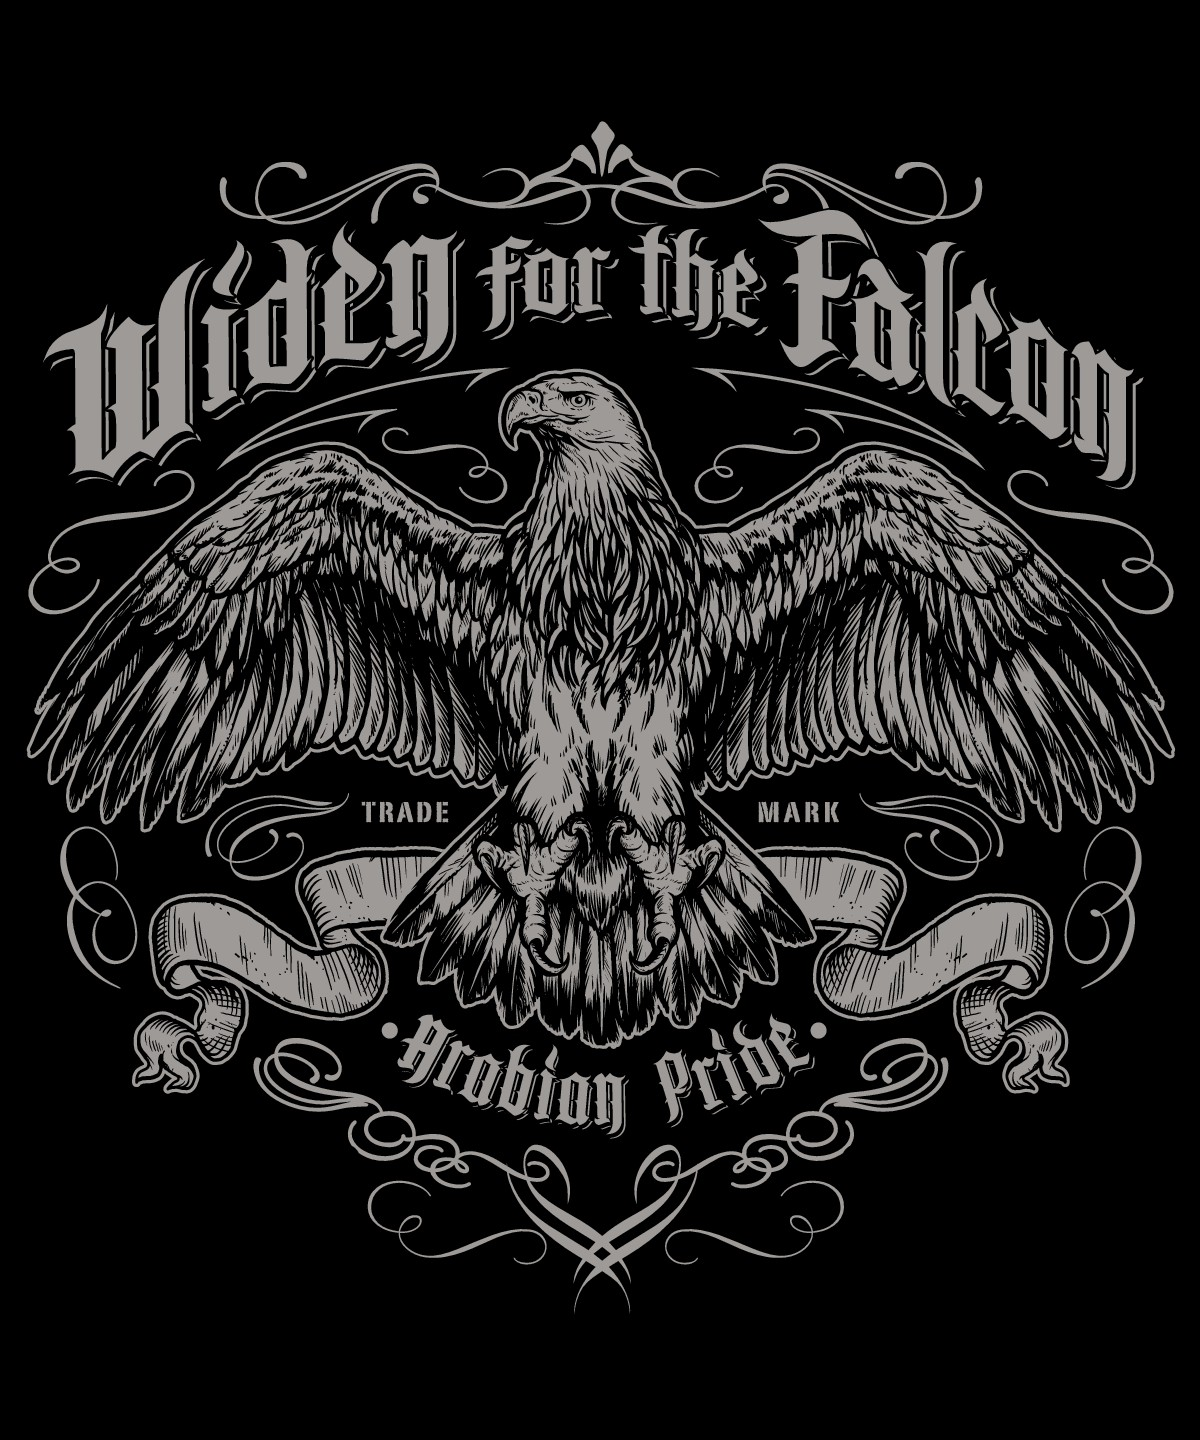 Widen for the eagle